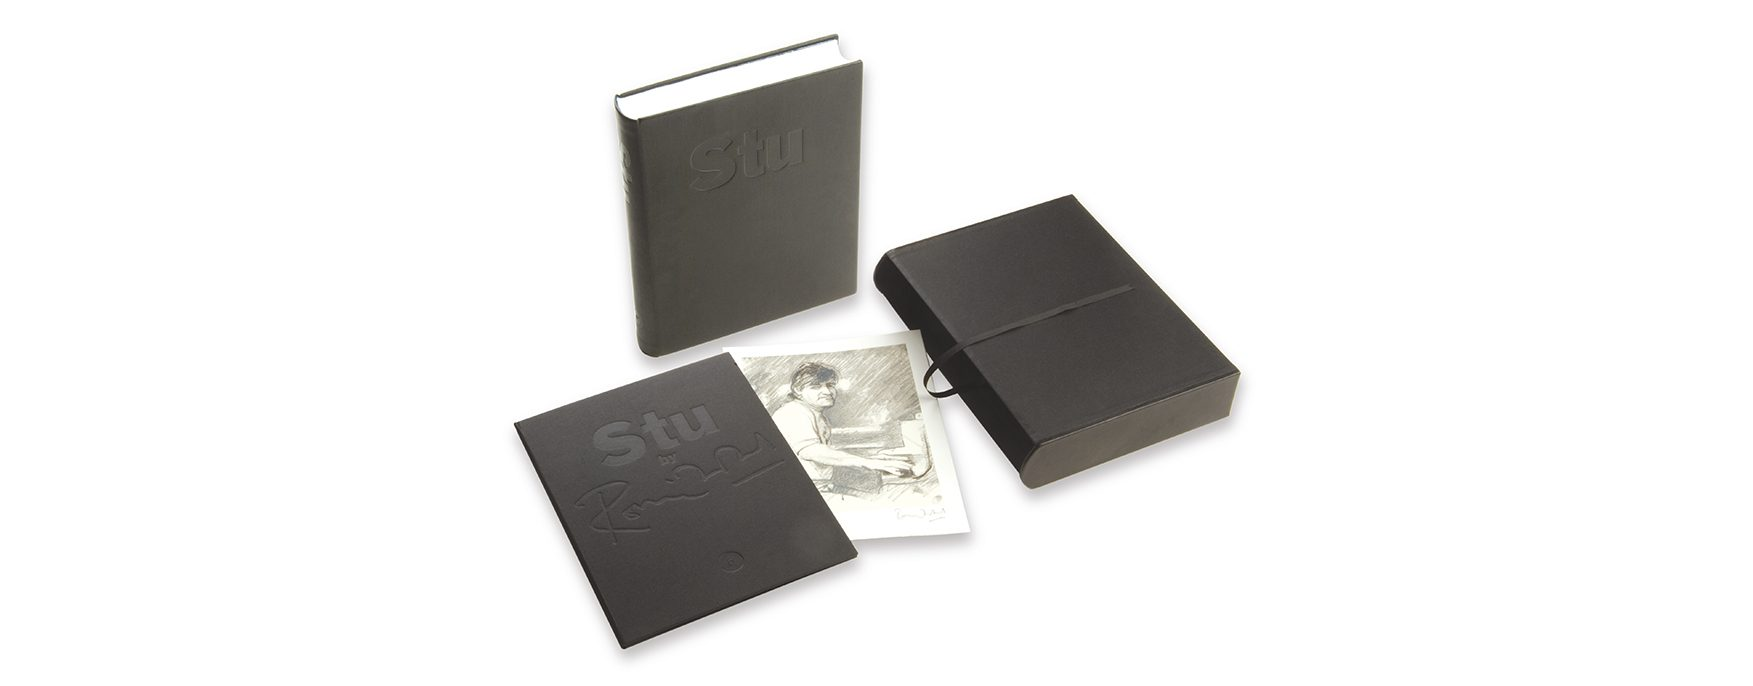 Limited edition private press book and print tribute Rolling Stone Ian Stuart | Out-take Limited